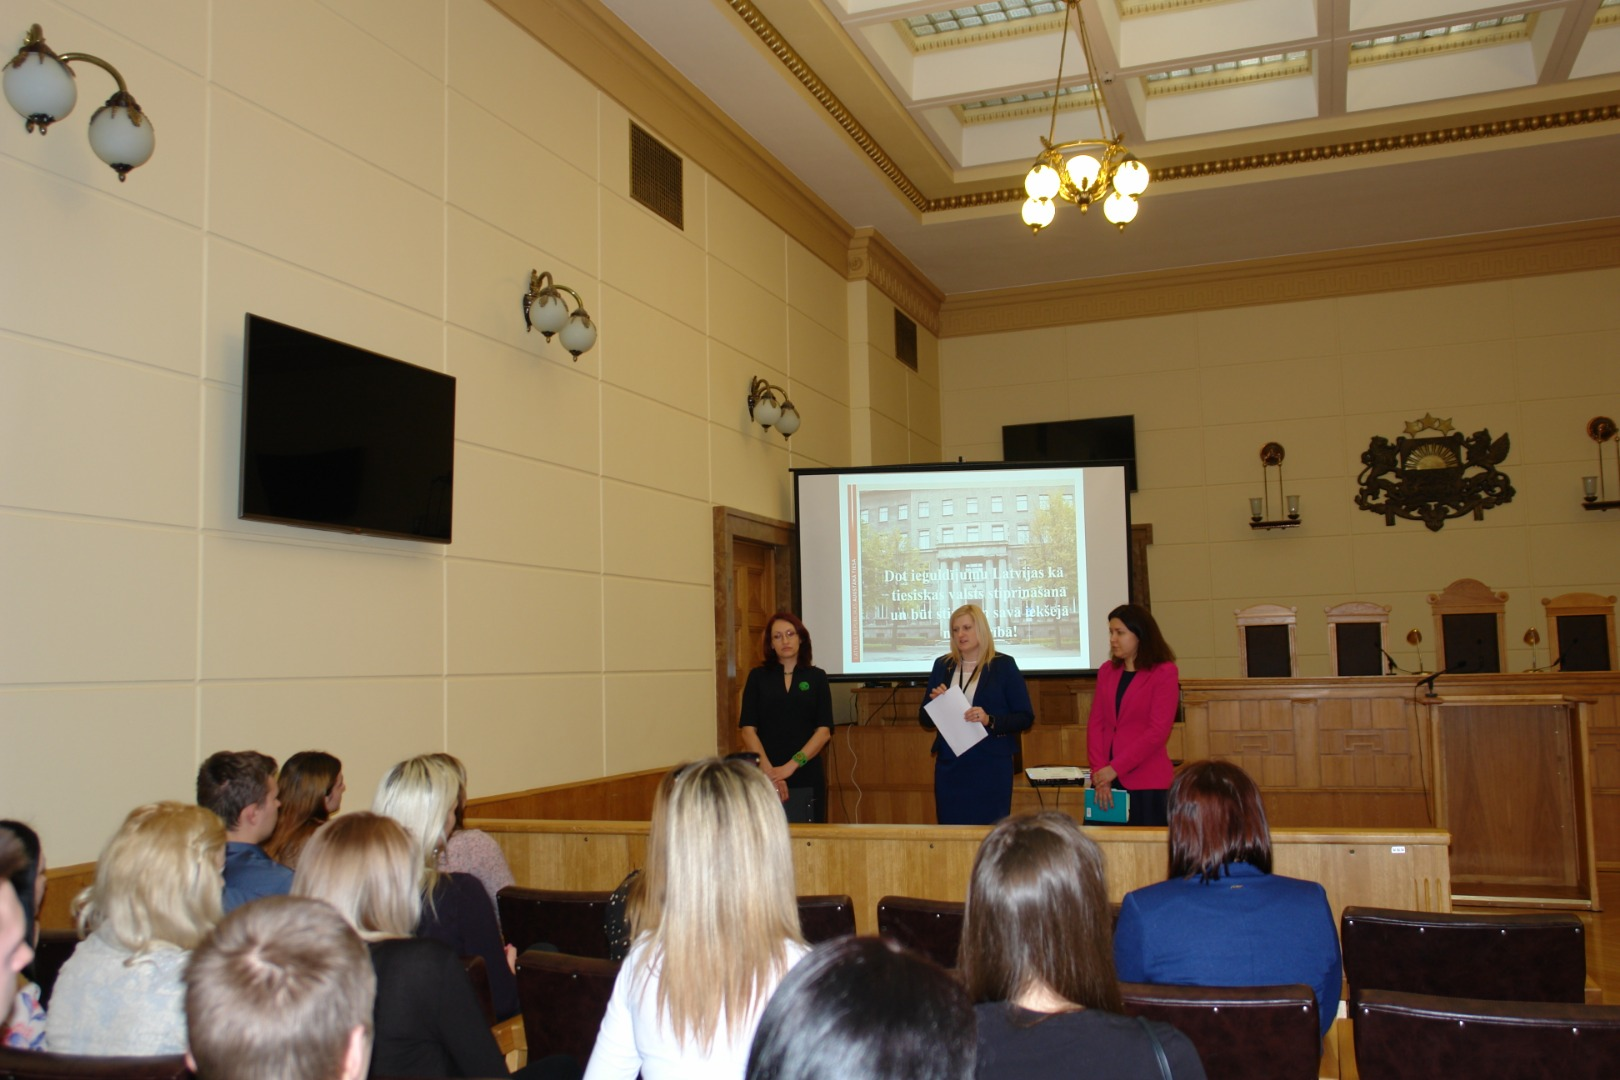 22.03.2019. The law students of Rezekne Academy of Technologies visited the Supreme Court to learn about the work of judges and employees, as well as about the possibilities to read the Supreme Court rulings and follow up information on case-law. In the photo: Assistants to judges Renate Vernusa and Santa Vigante and legal research counsel Nora Magone tell visitors about their work.